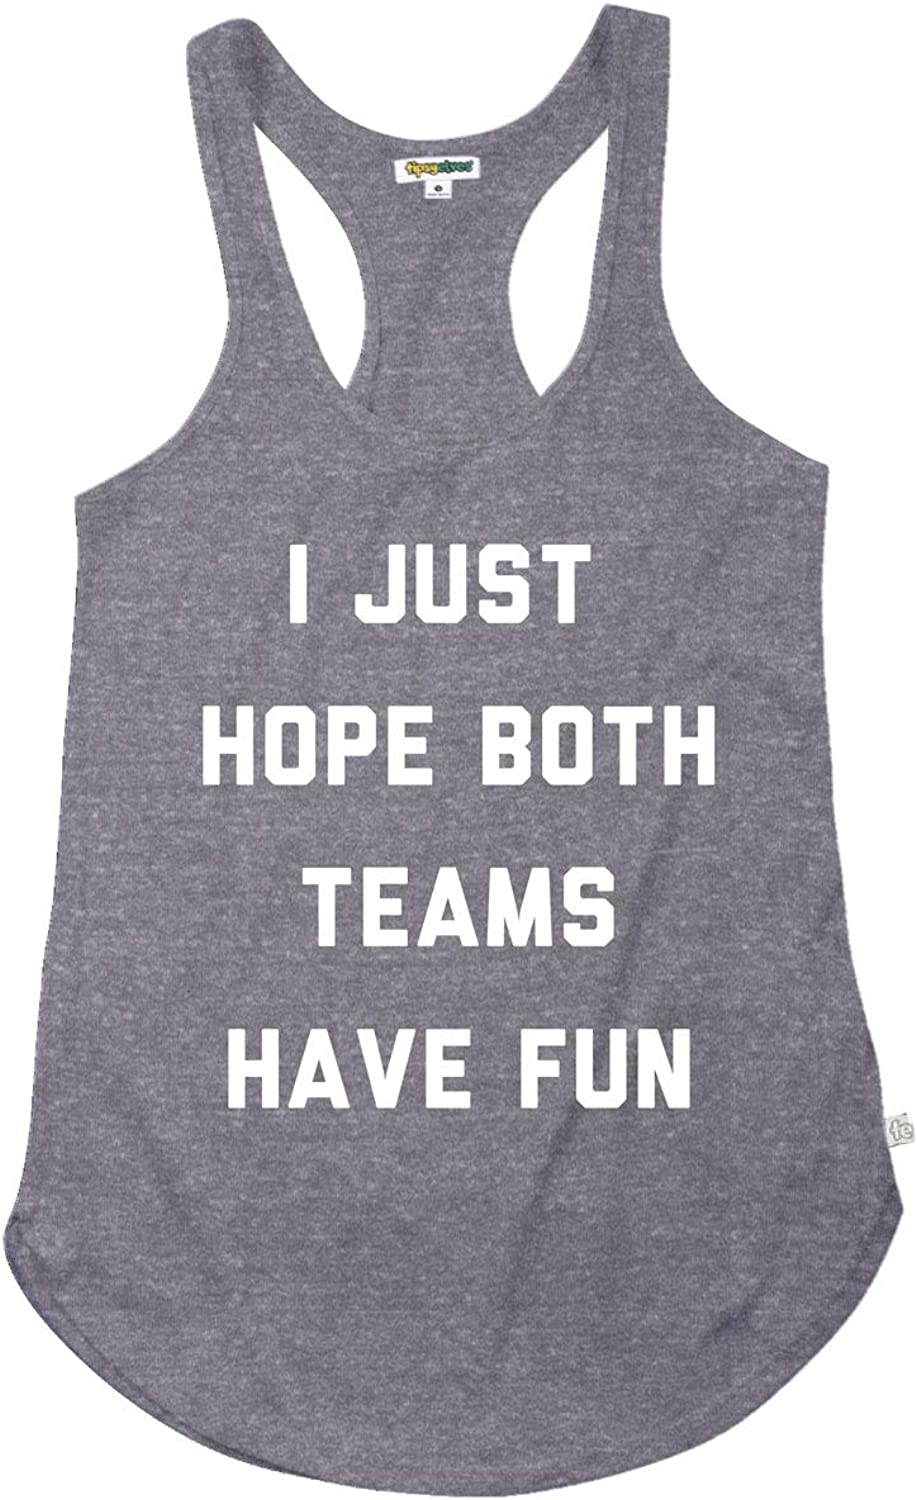 Women's Funny Tank Tops - Funny Tank Tops for Ladies